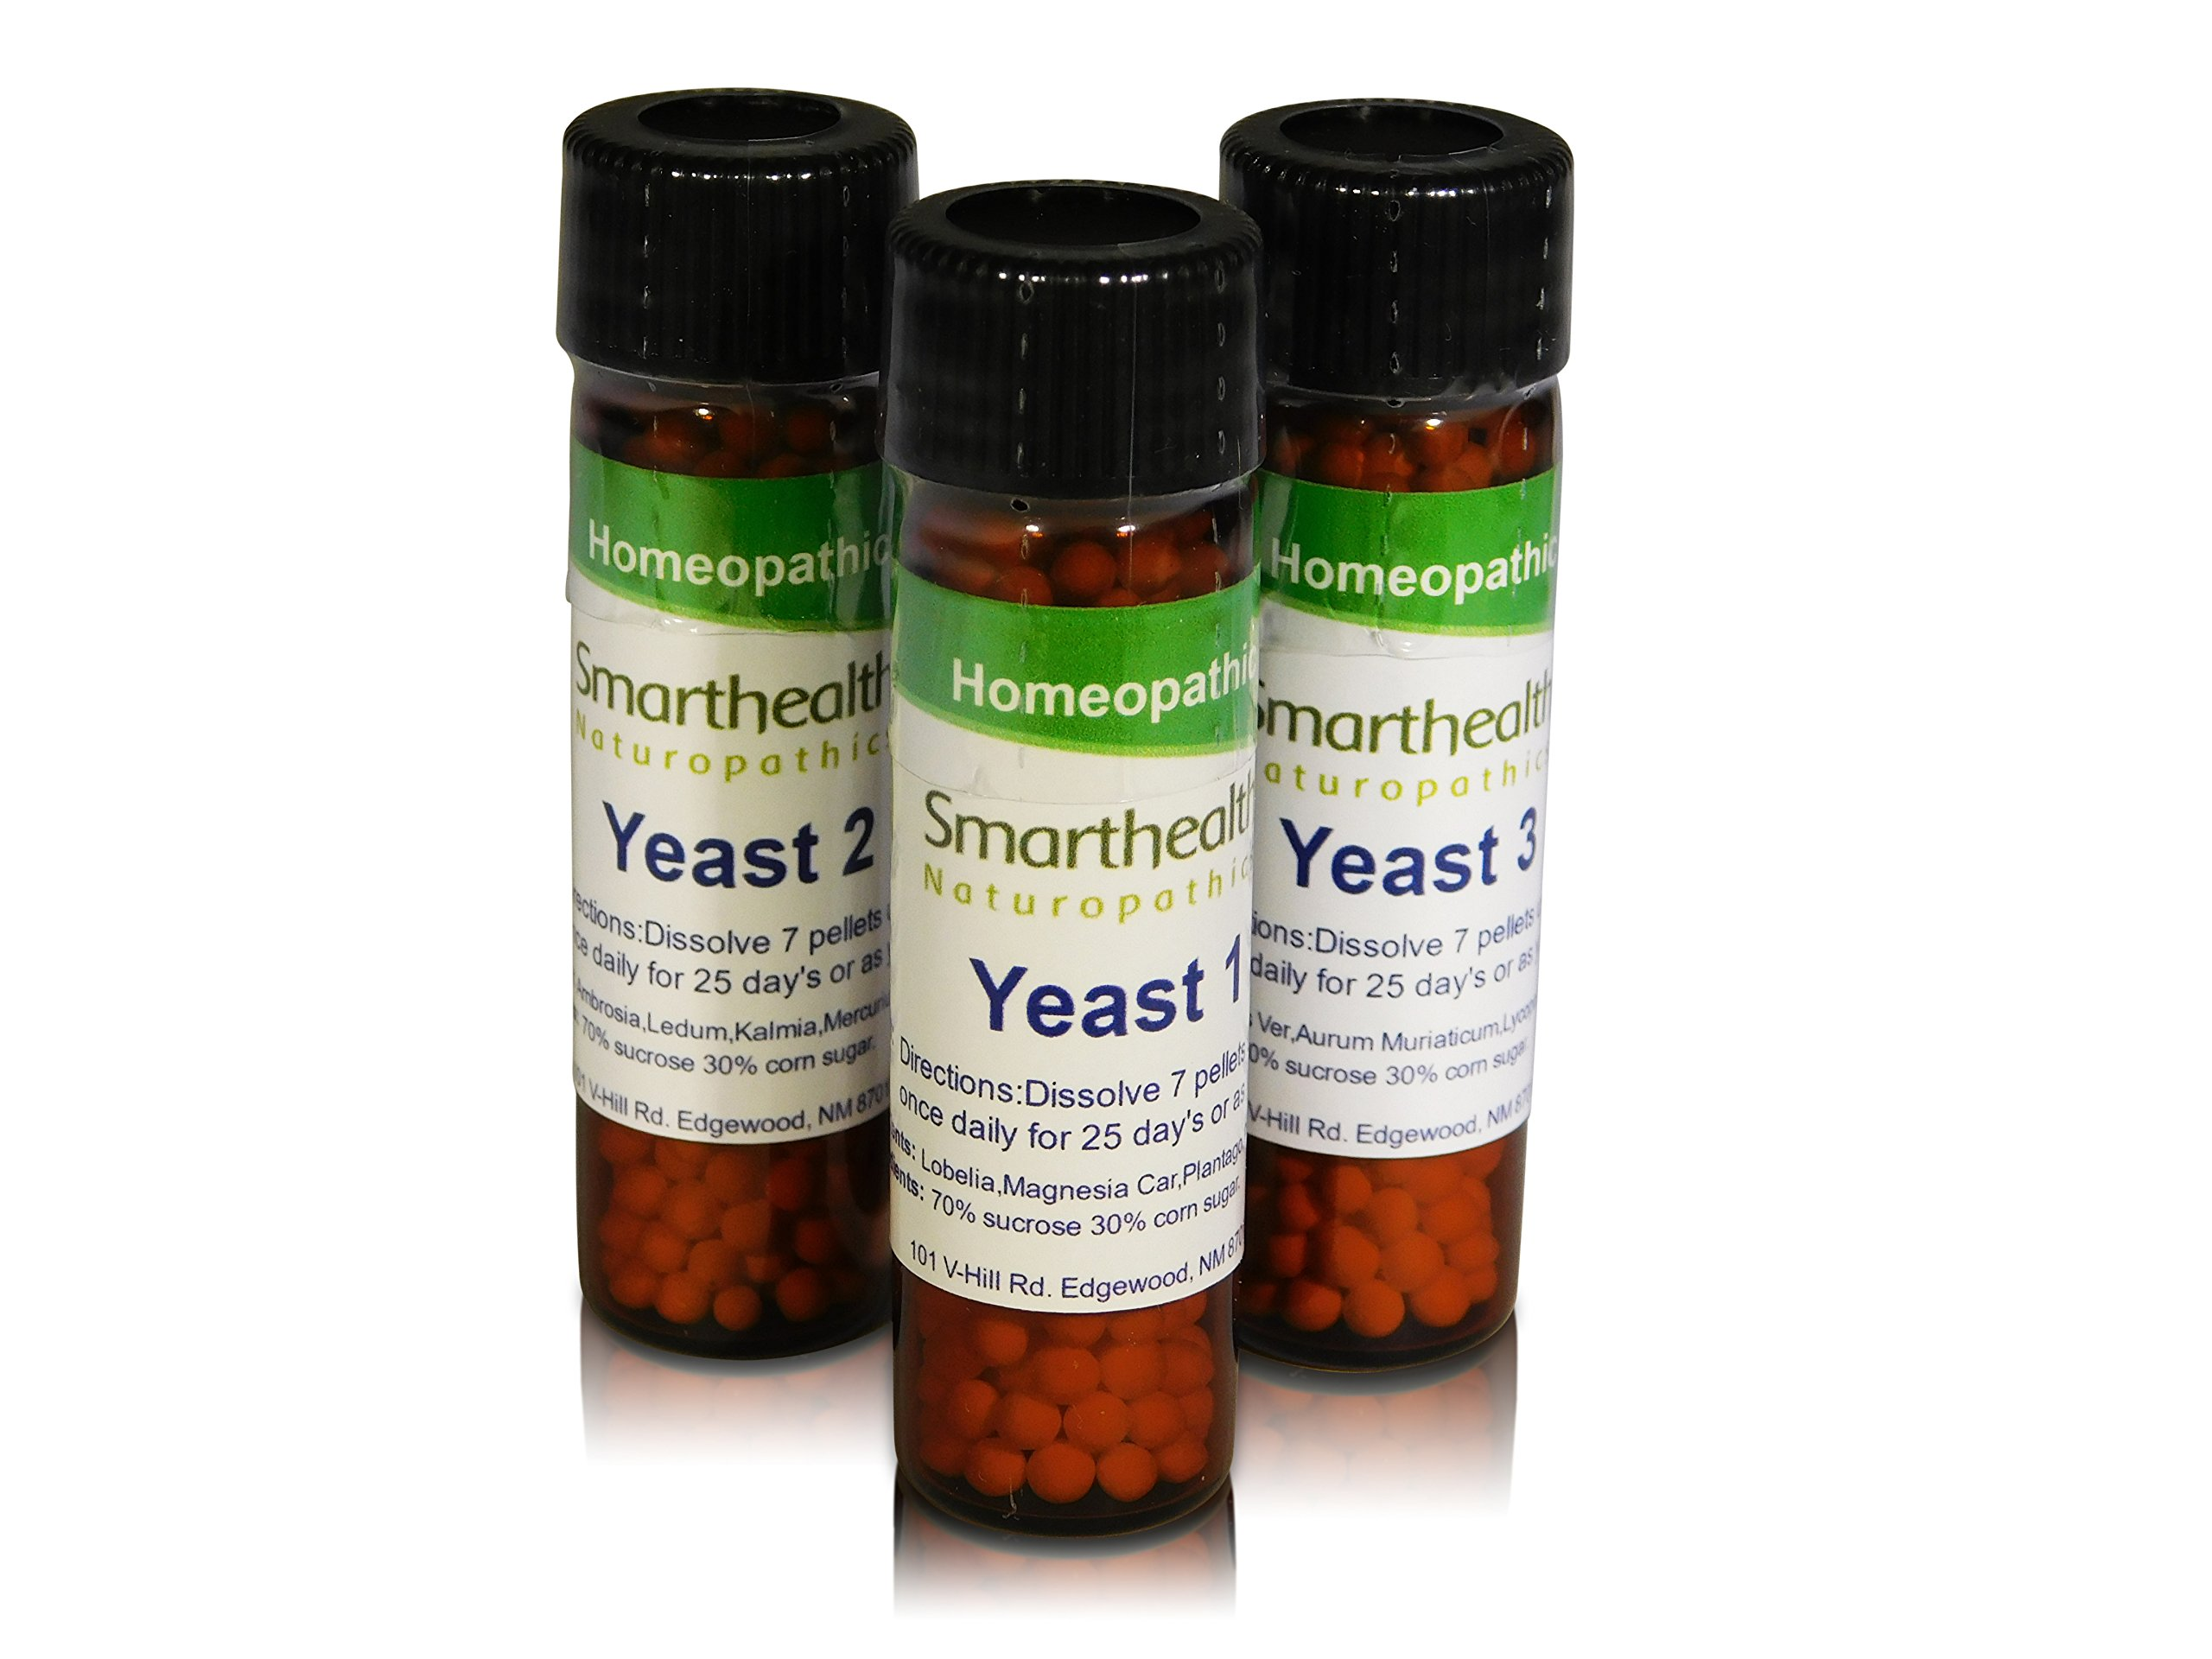 Chronic Yeast Conditions, Candida Albicans Overgrowth. by Smarthealth, naturopathics